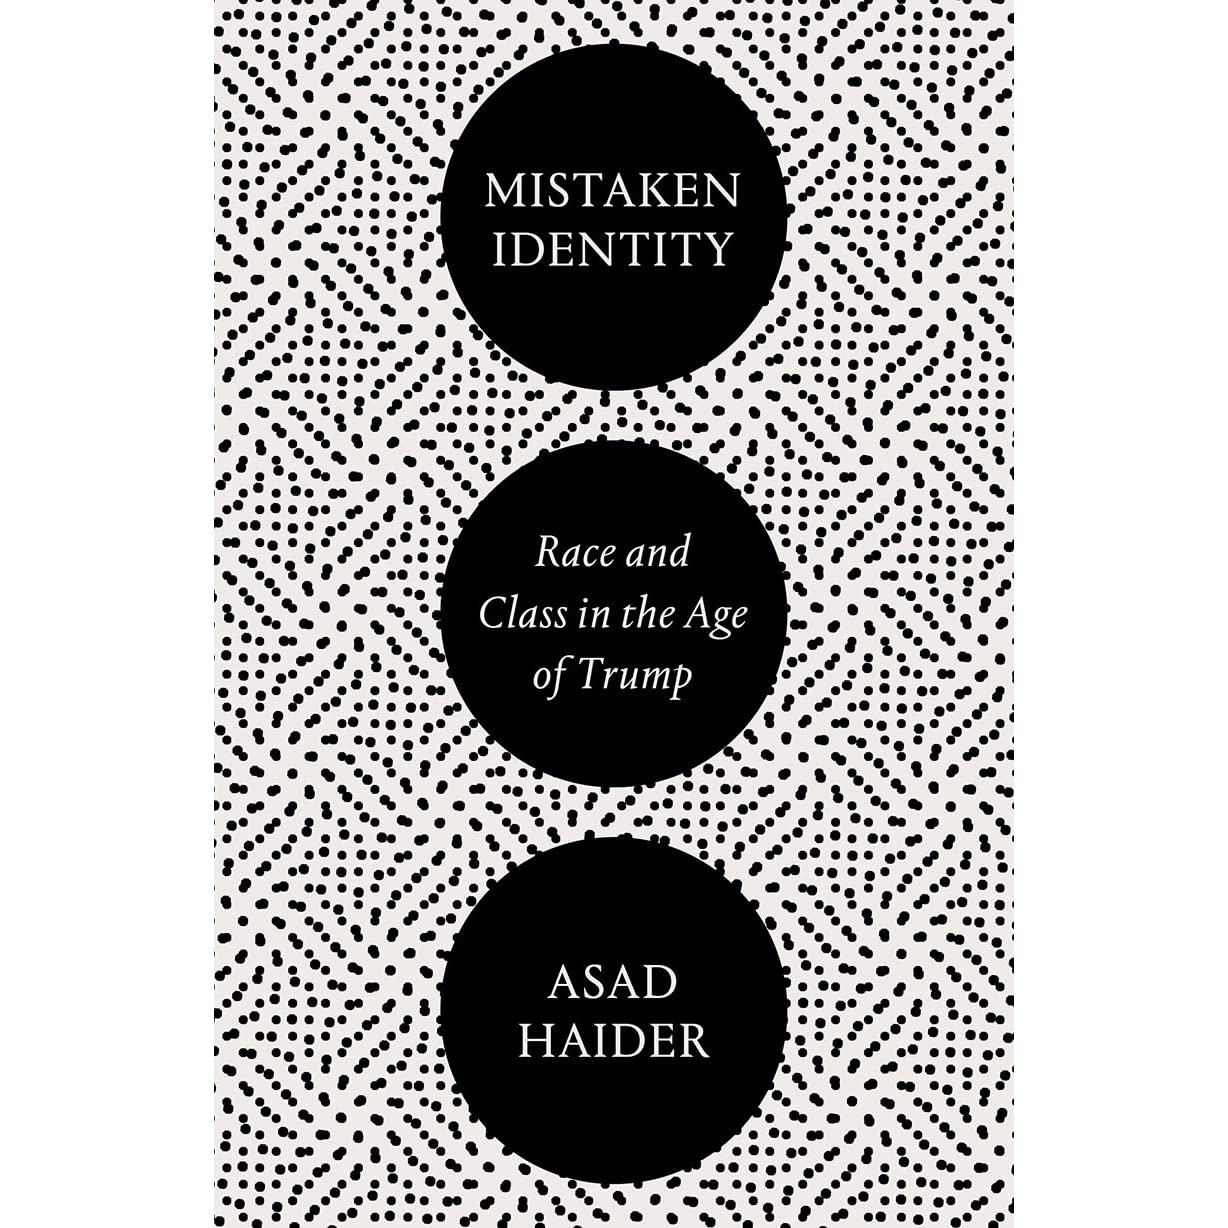 Mistaken Identity: Race and Class in the Age of Trump by Asad Haider